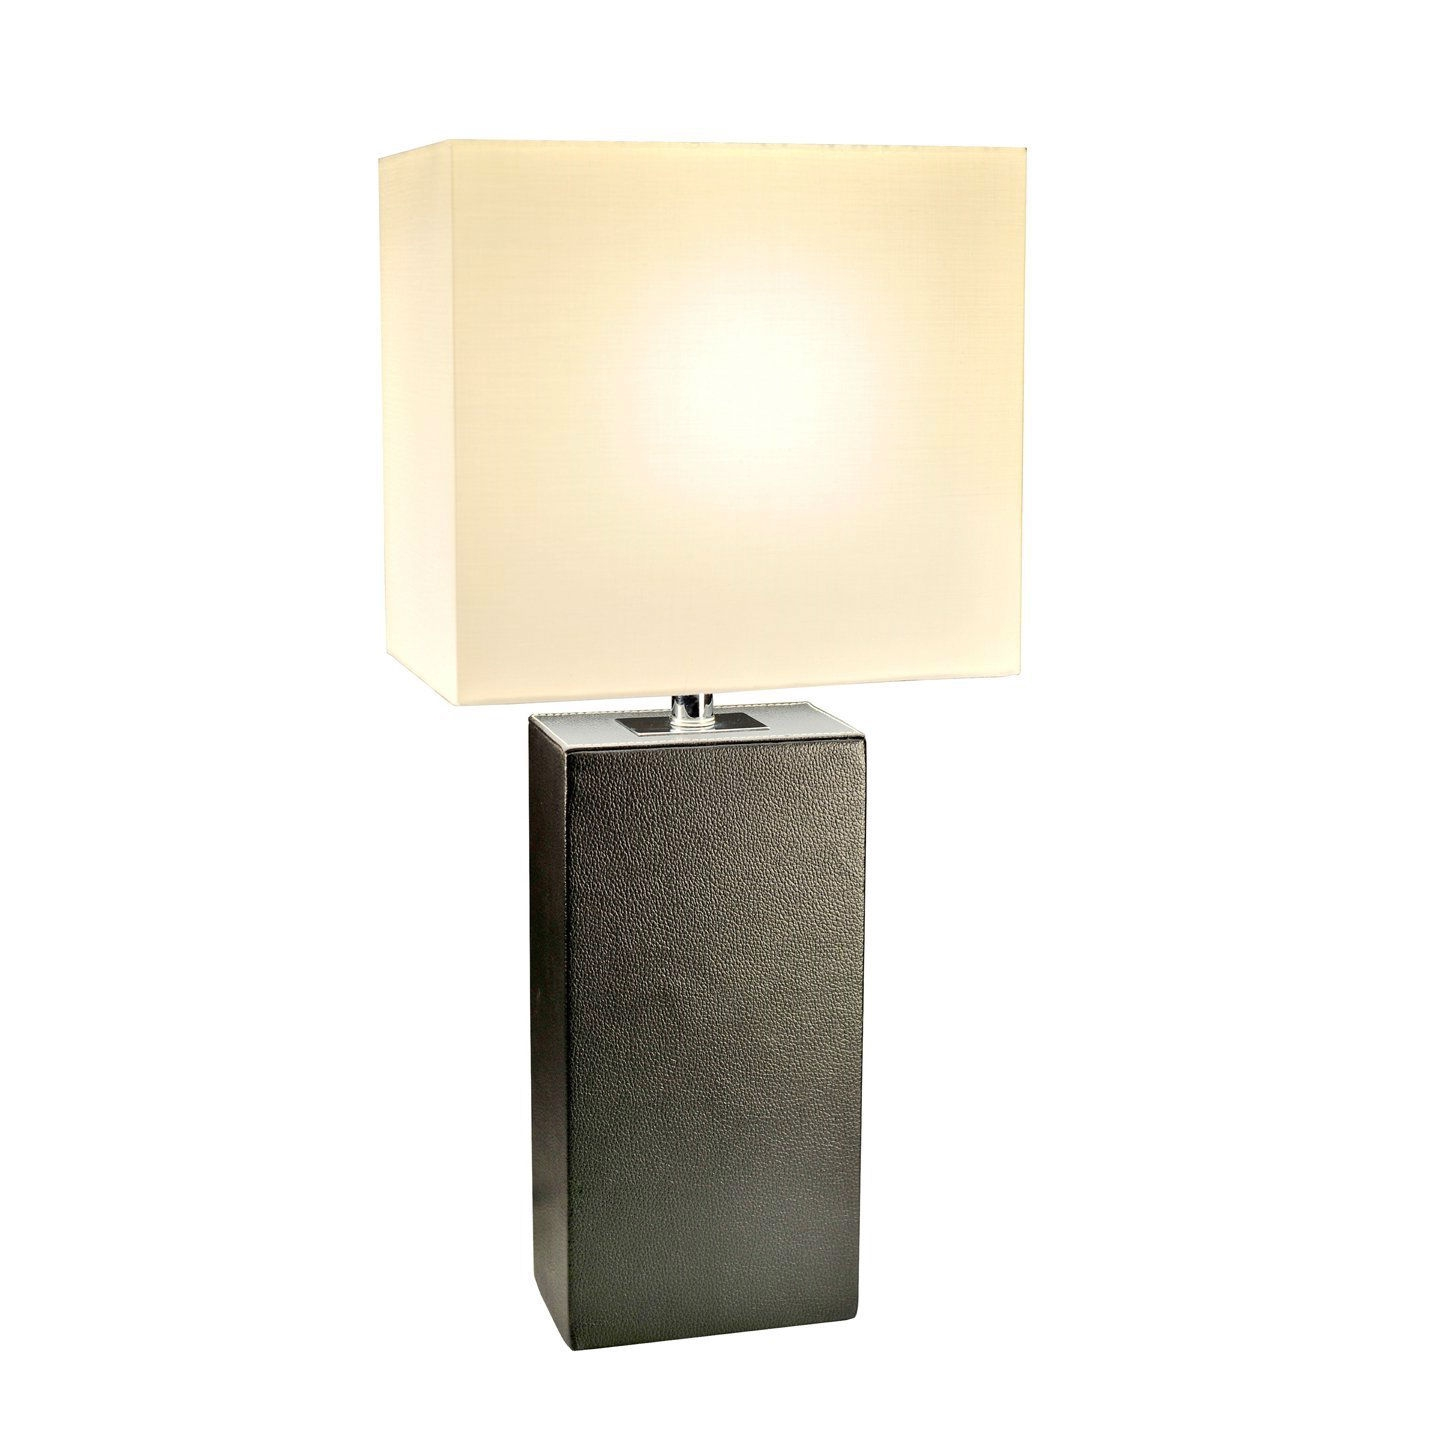 This fashionable table lamp, with its black leather body and white fabric shade, will add style and pizazz to any room. We believe that lighting is like jewelry for your home. Our products will help to enhance your room with elegance and sophistication.